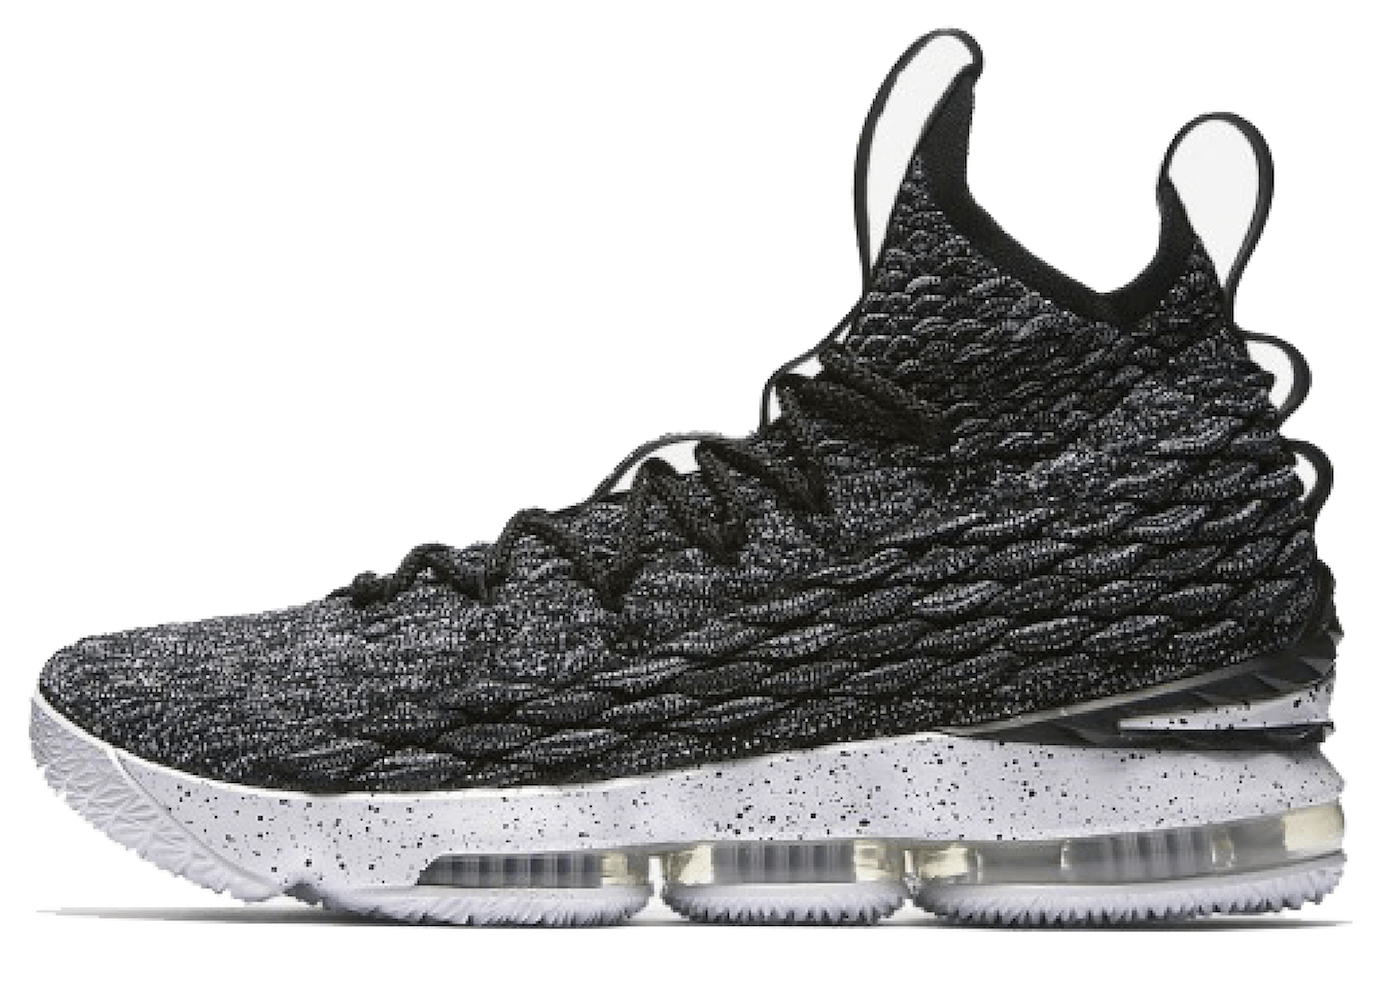 LeBron 15 Ashesの写真